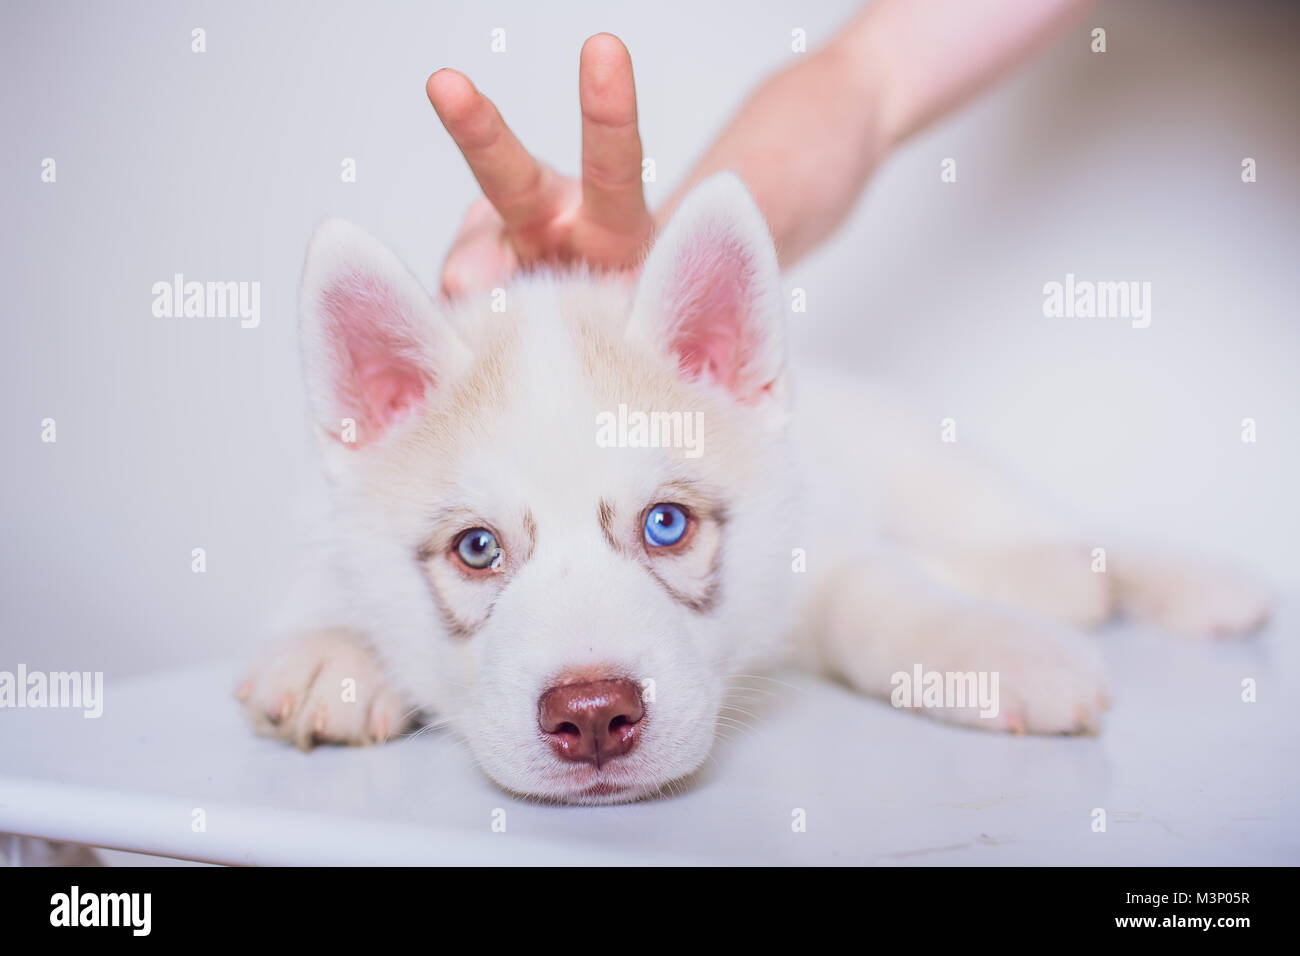 Cute Siberian Husky Puppy Sitting On White Background Isolated Stock